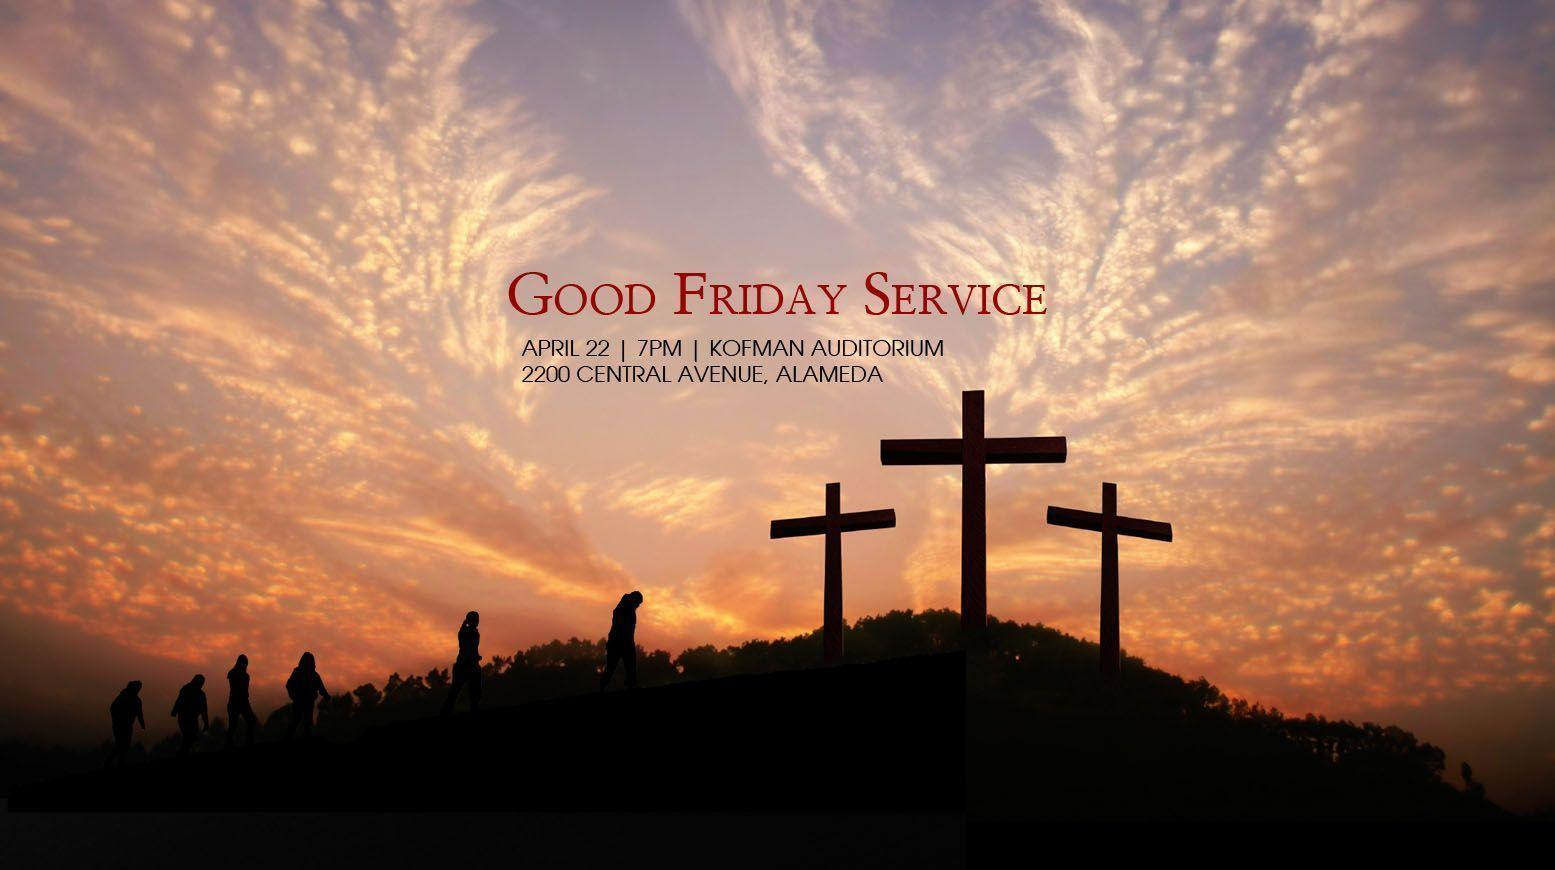 Good Friday Images Quotes jesus christ 3 2